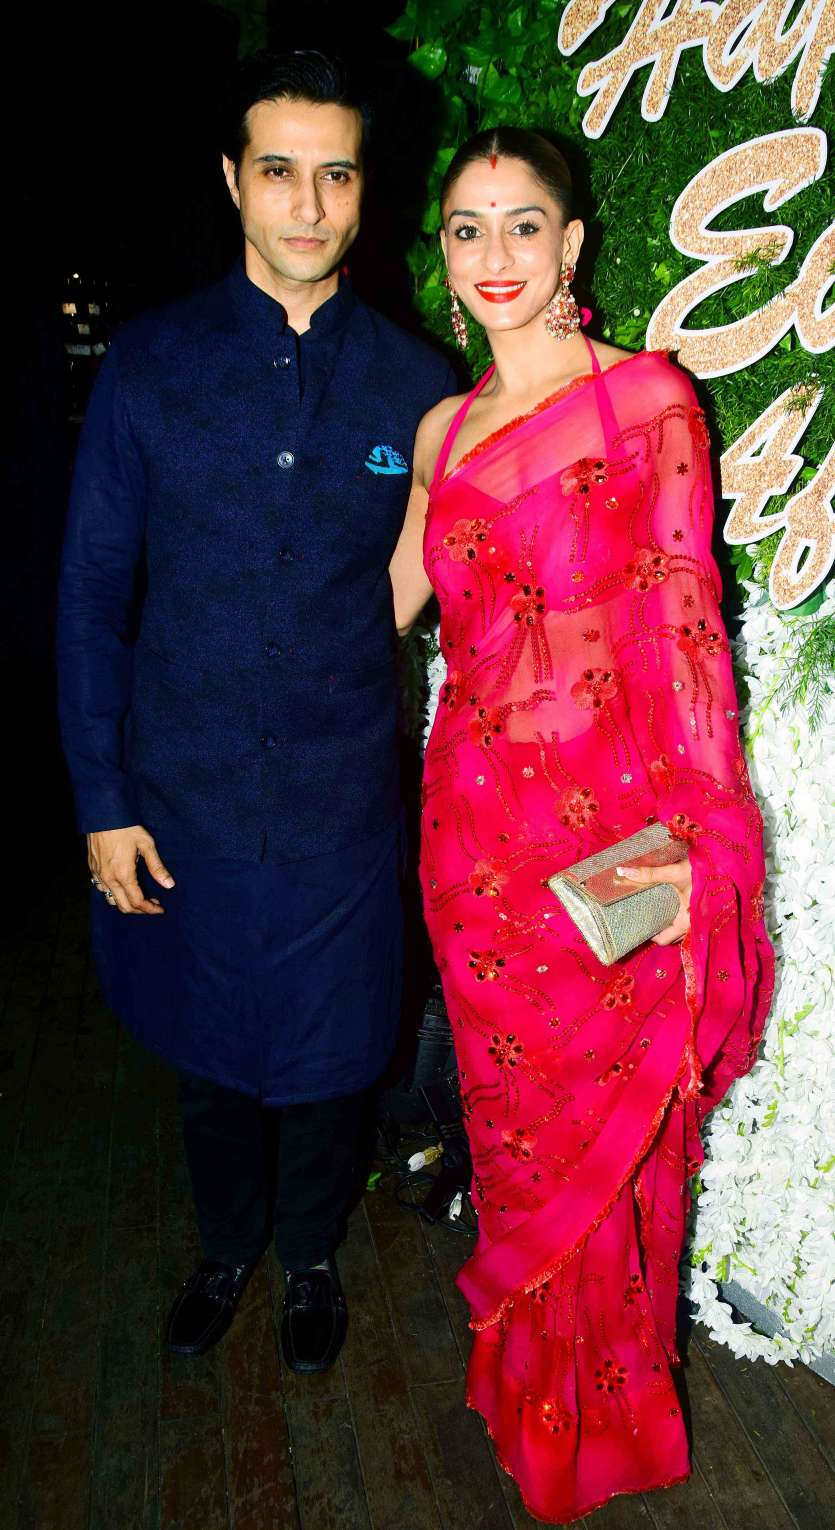 40a0702ea9f2c Another power couple Apurva Agnihotri with wife Shilpa Sakhlani were also  present to light up the